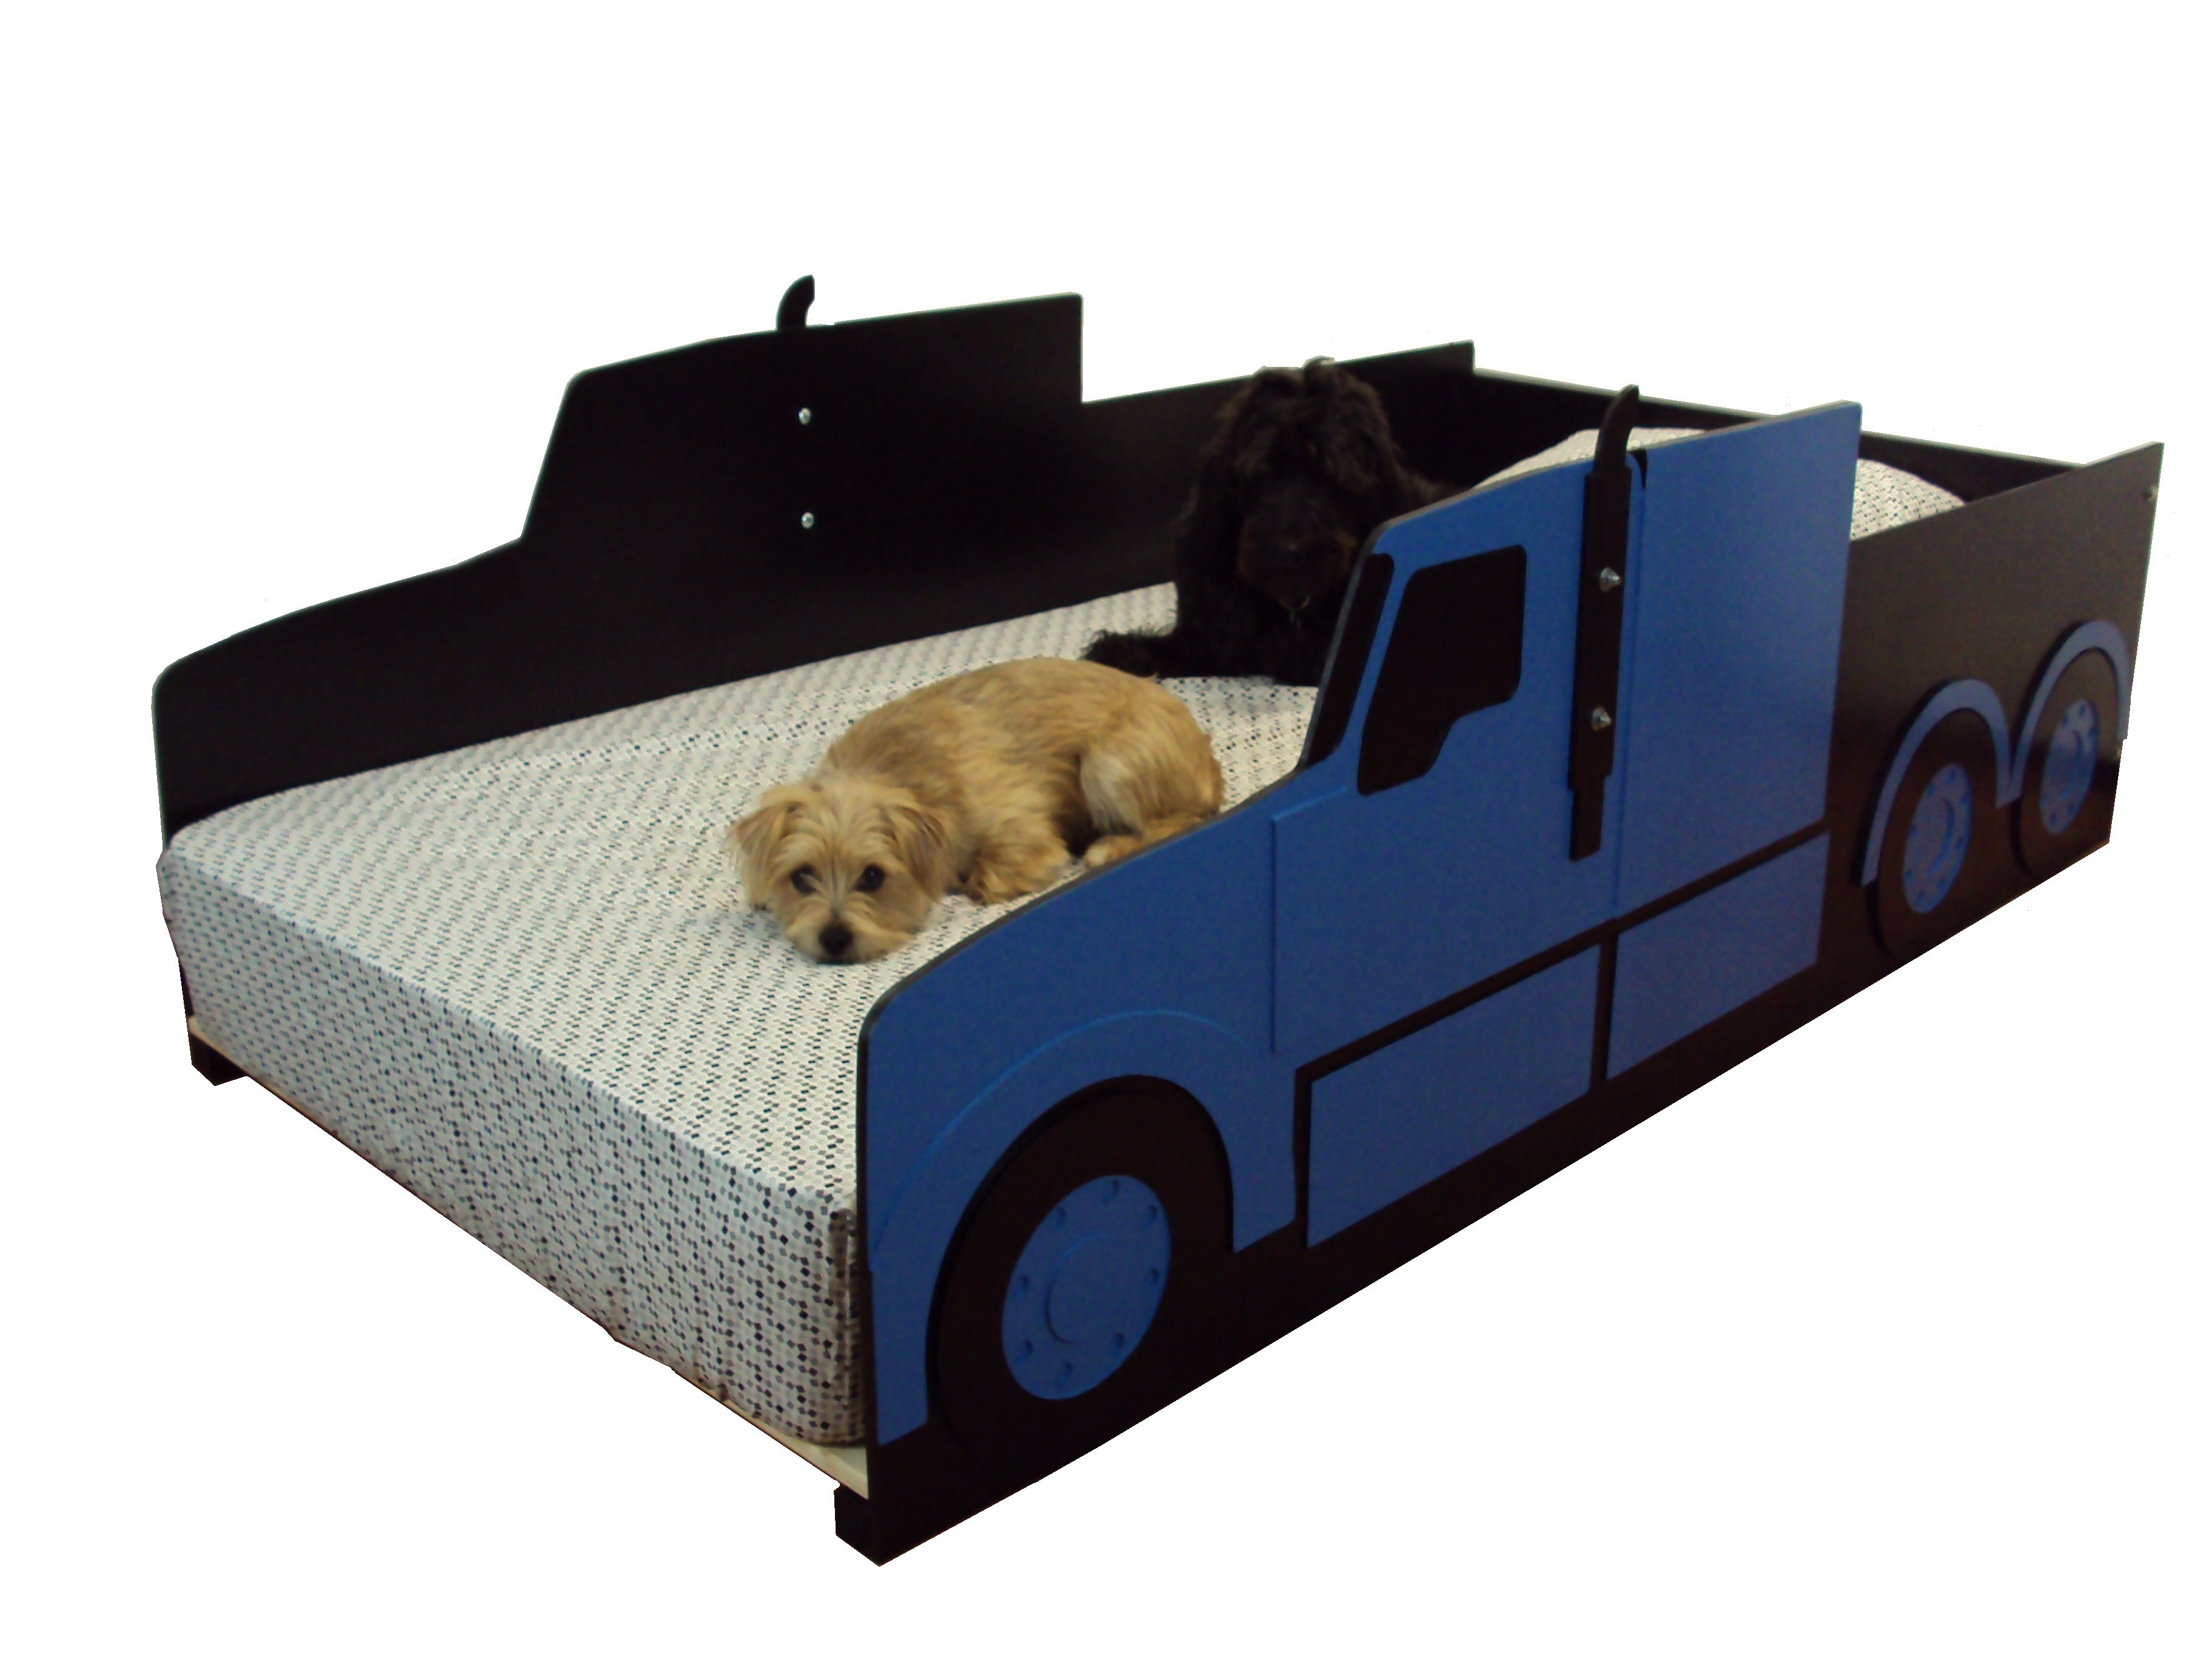 Picture of: Custom Semi Tractor Truck Twin Kids Bed Frame Handcrafted Truck Themed Children S Bedroom Furniture By Tradecraft Specialties Custommade Com